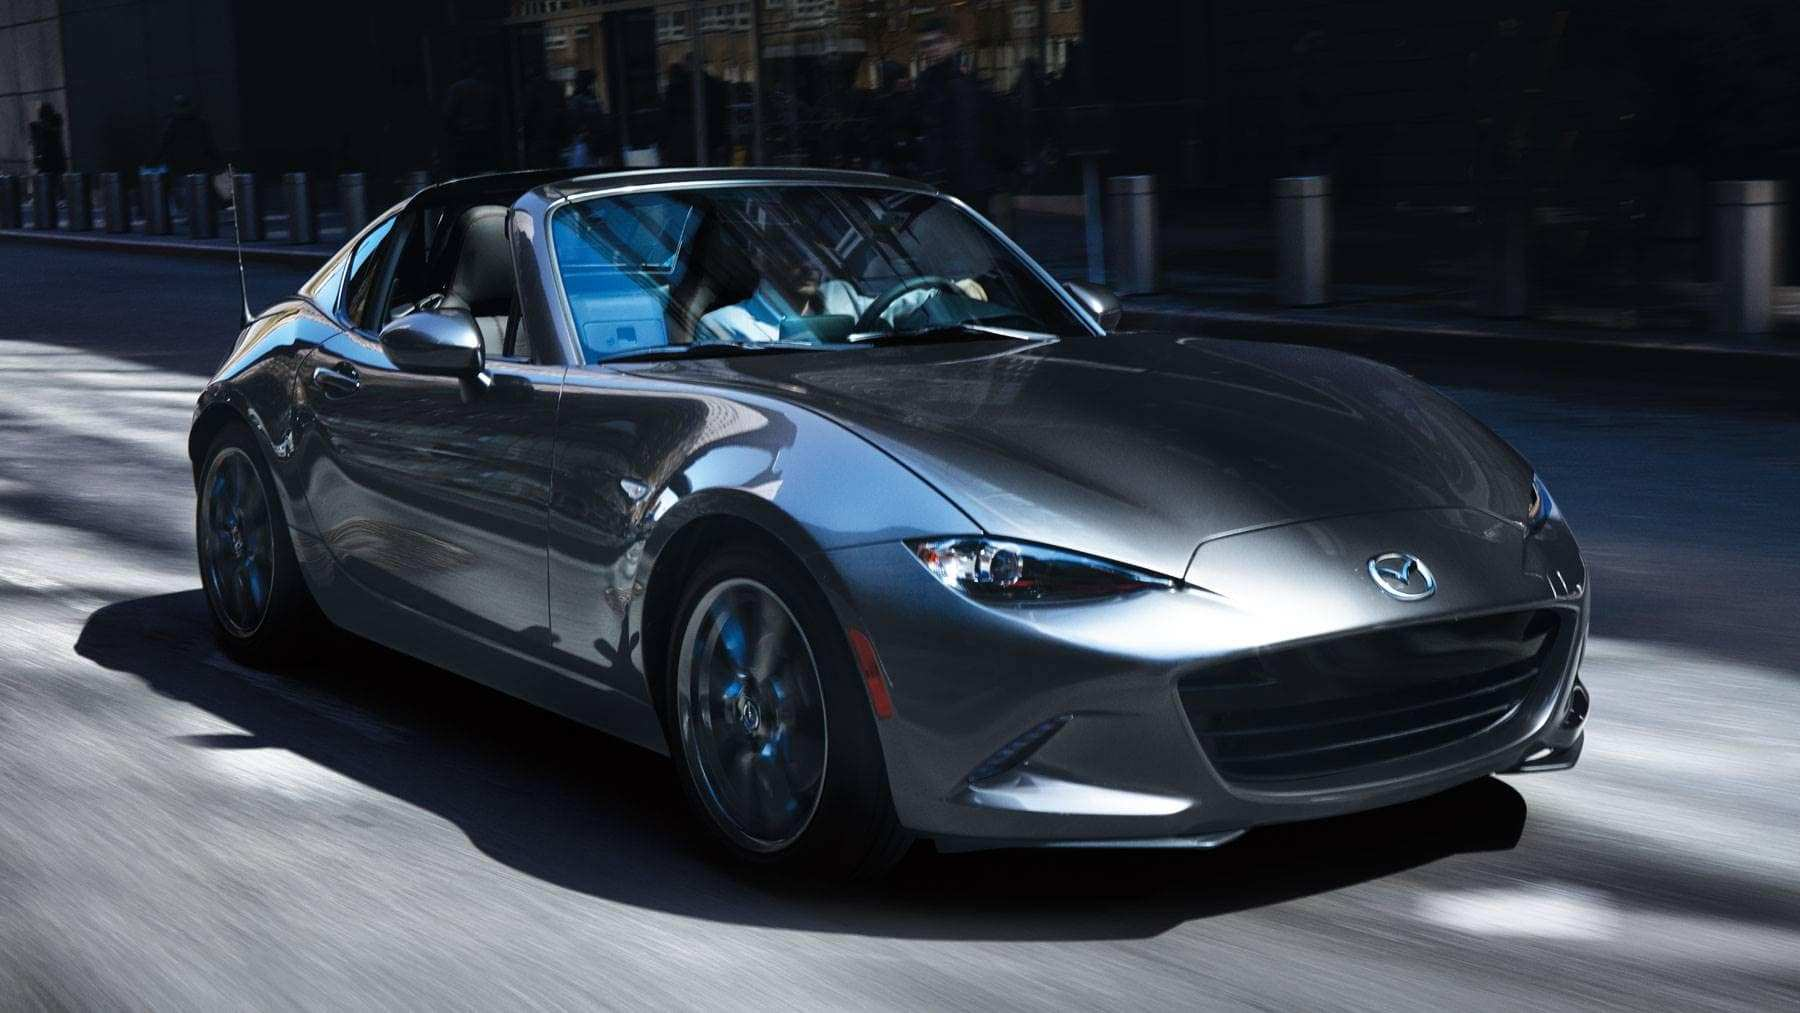 27 All New 2019 Mazda Mx 5 Miata Review